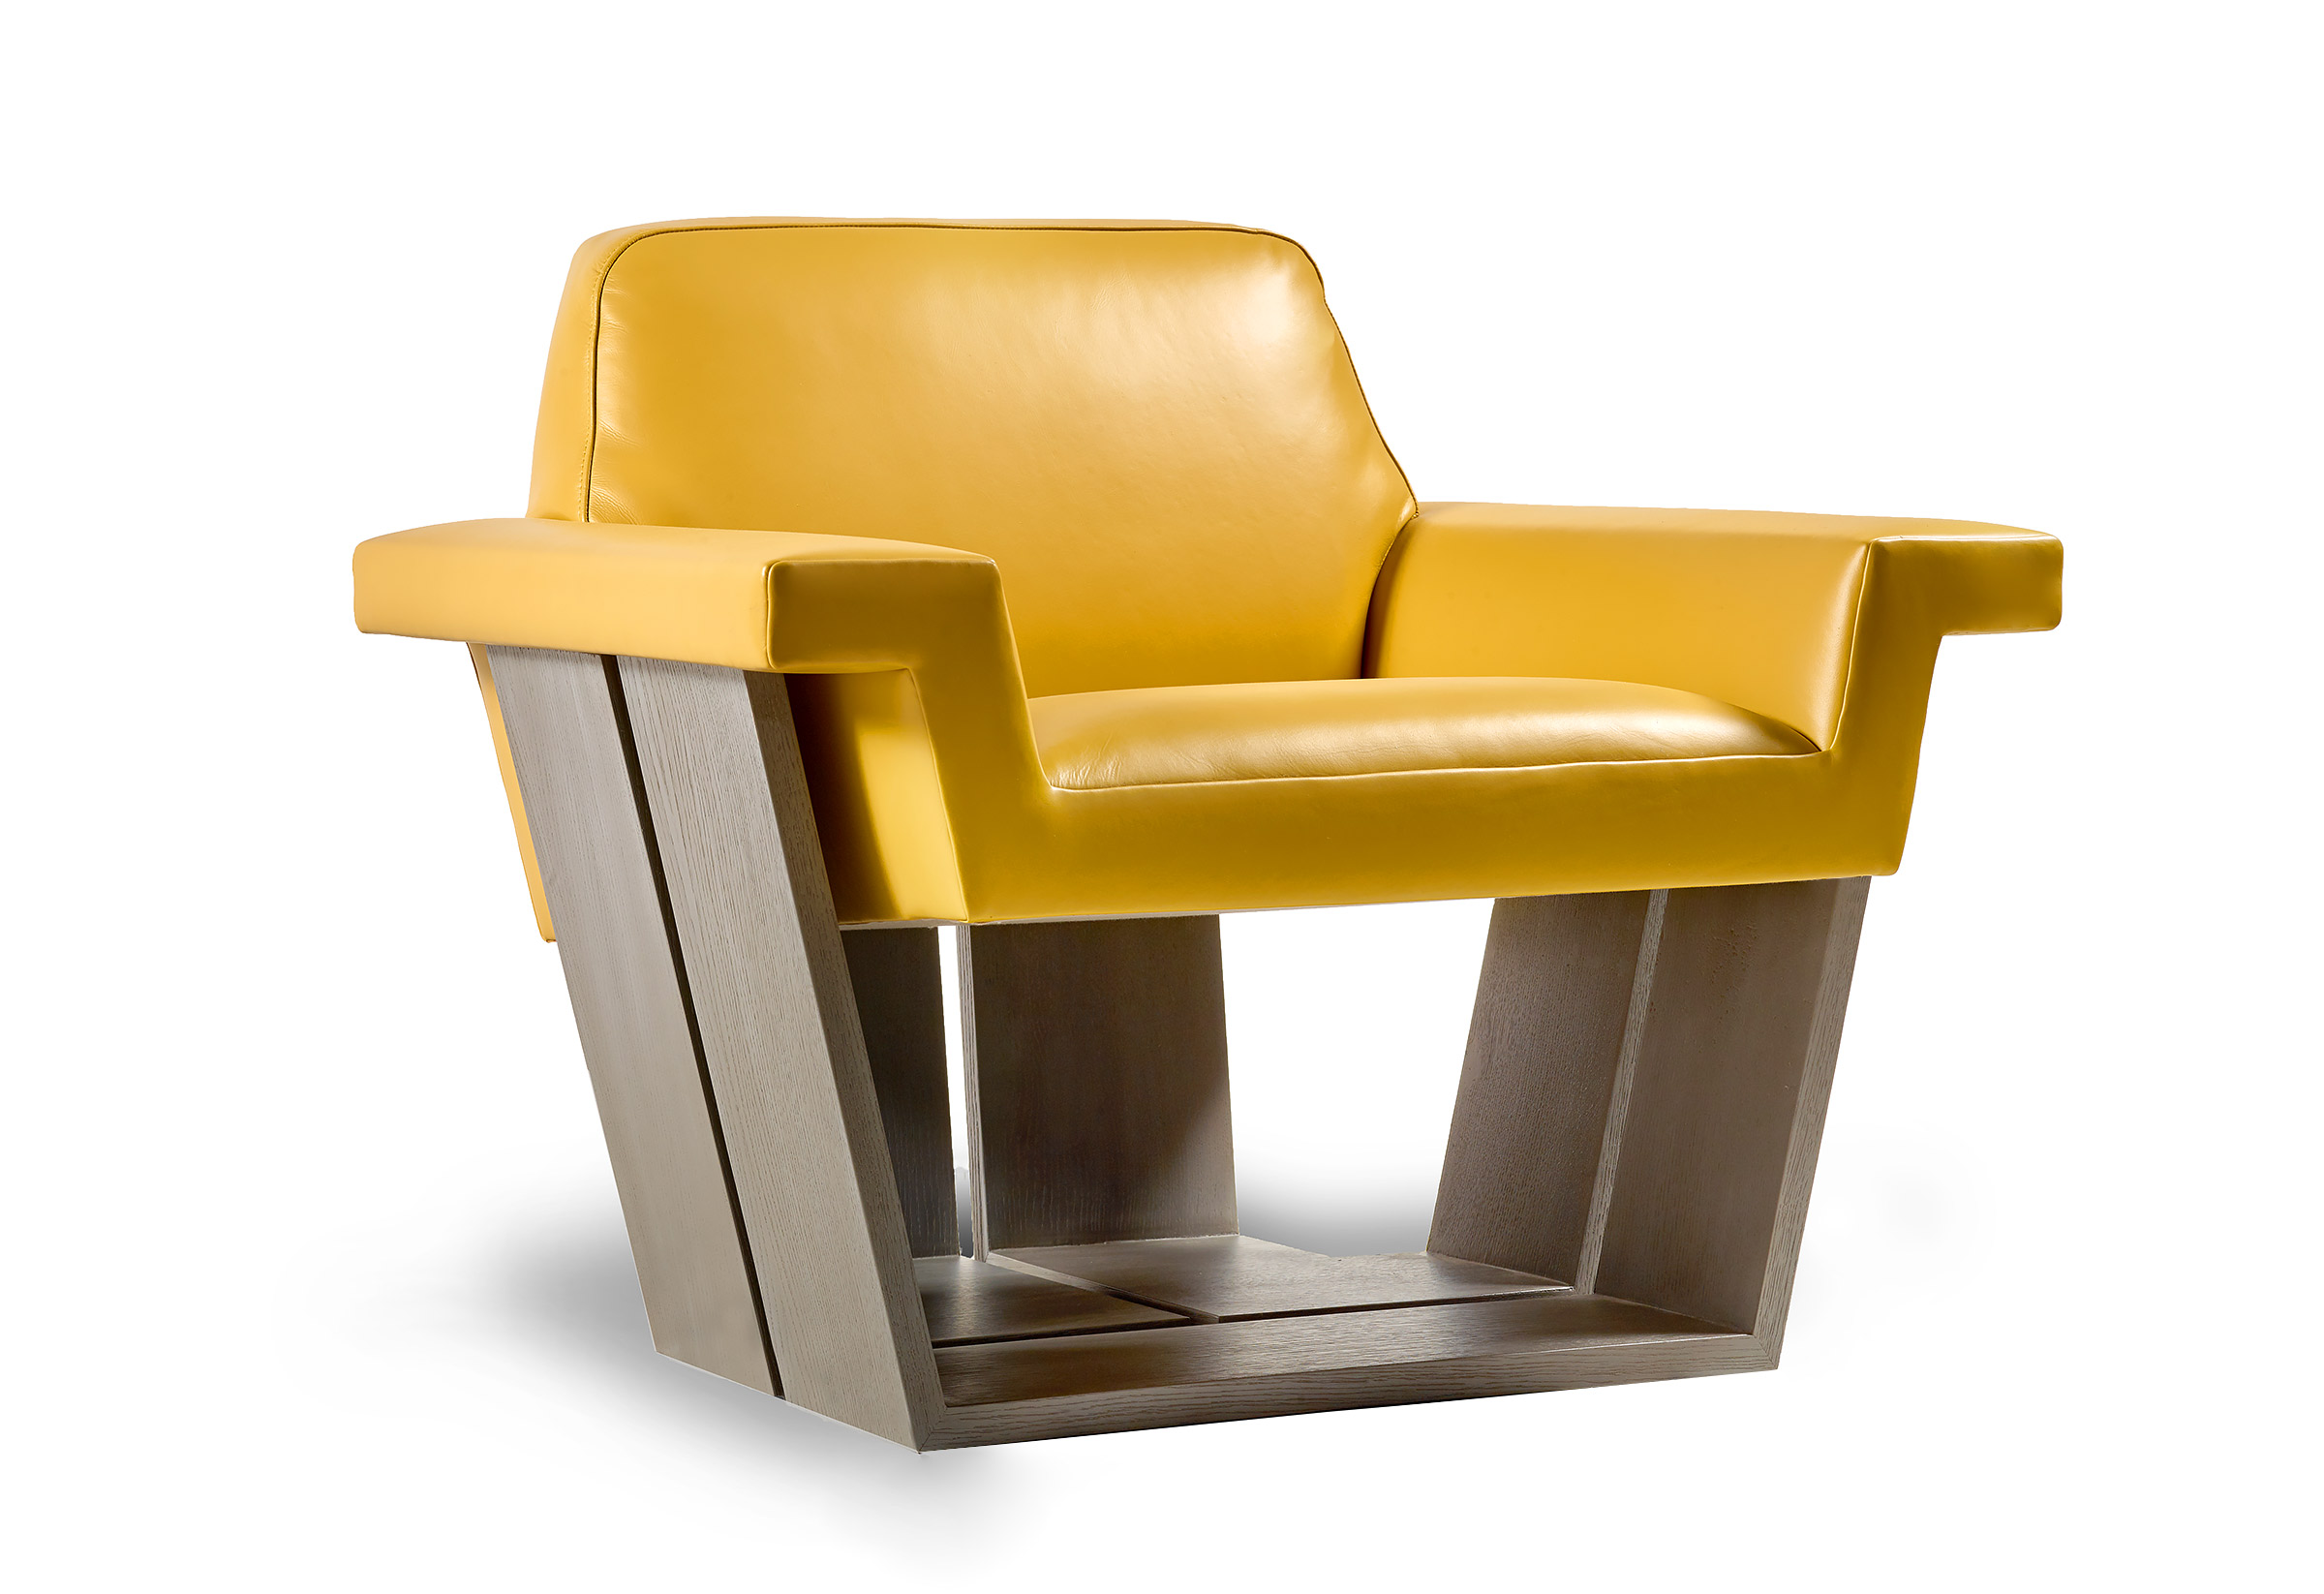 B-and-G-Design-Custom-Furniture-Chair